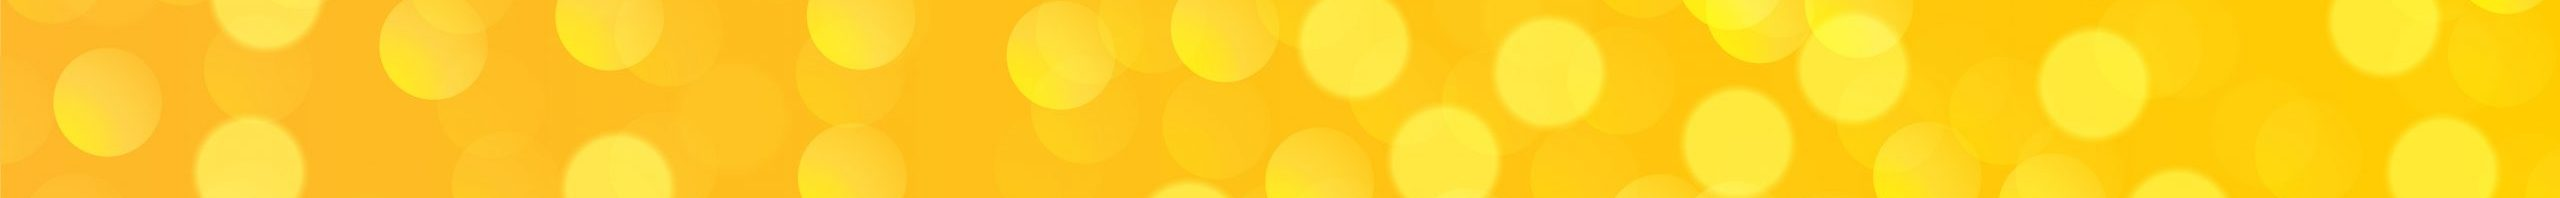 yellow banner with bokeh light effect design